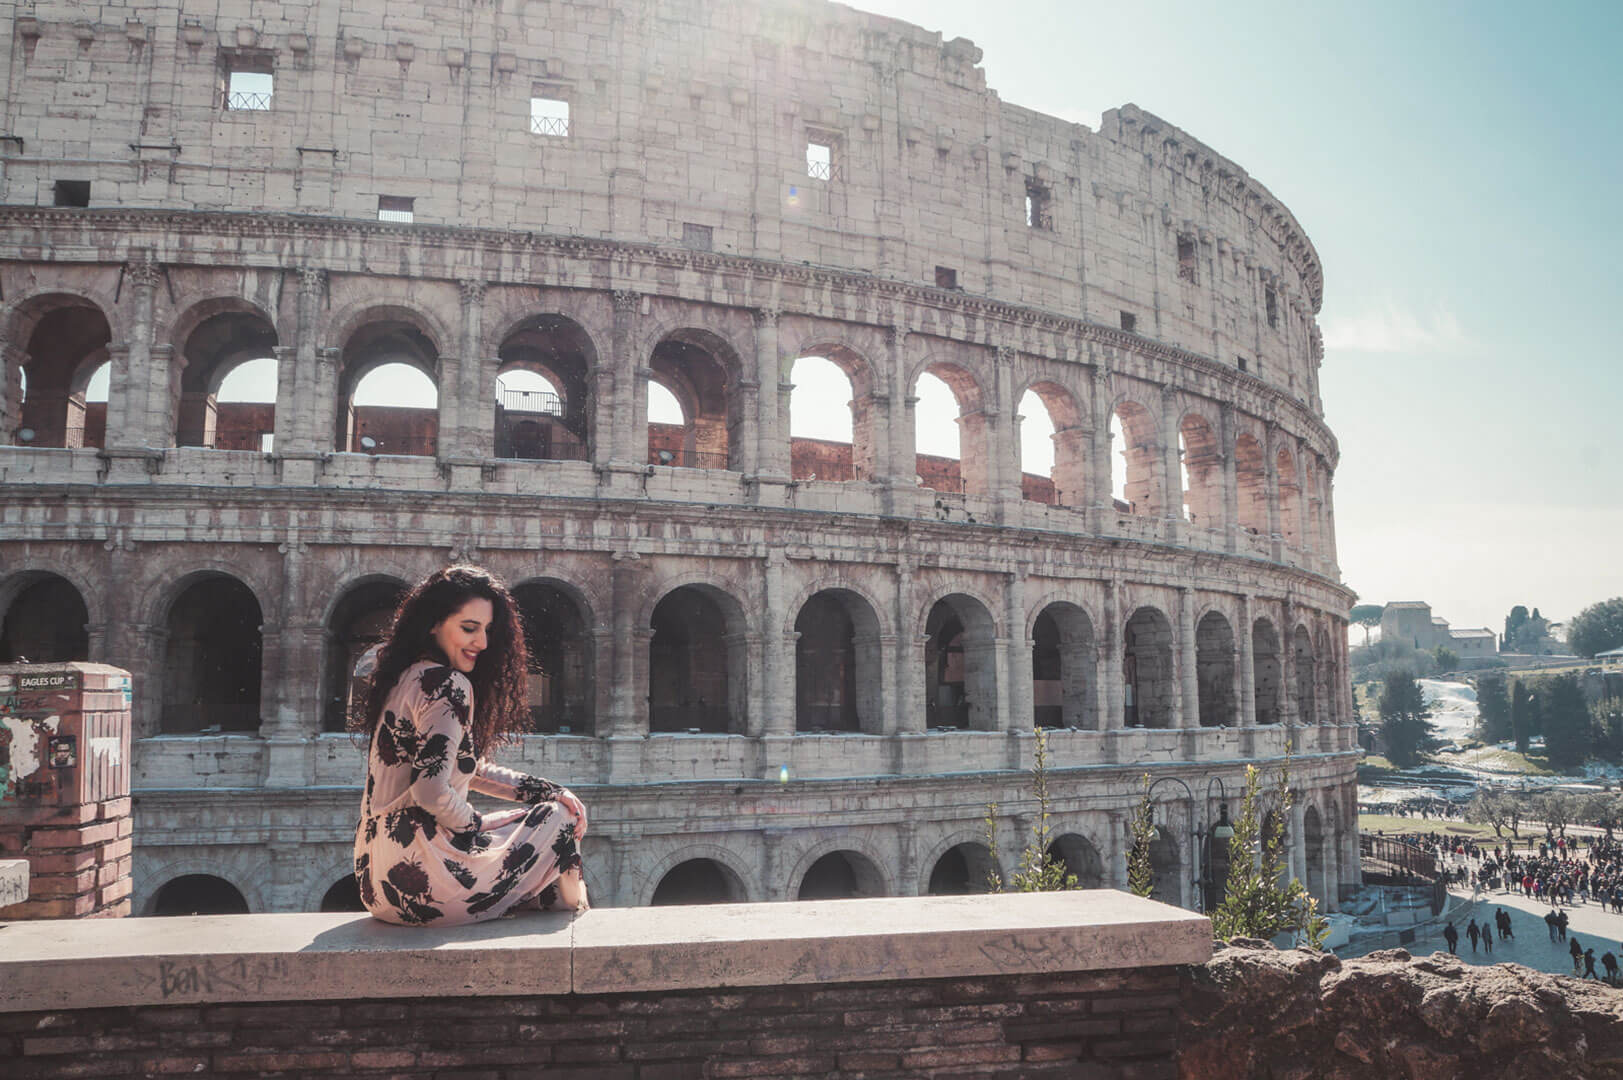 rome-italy-la-vie-en-blog-all-rights-reserved-28